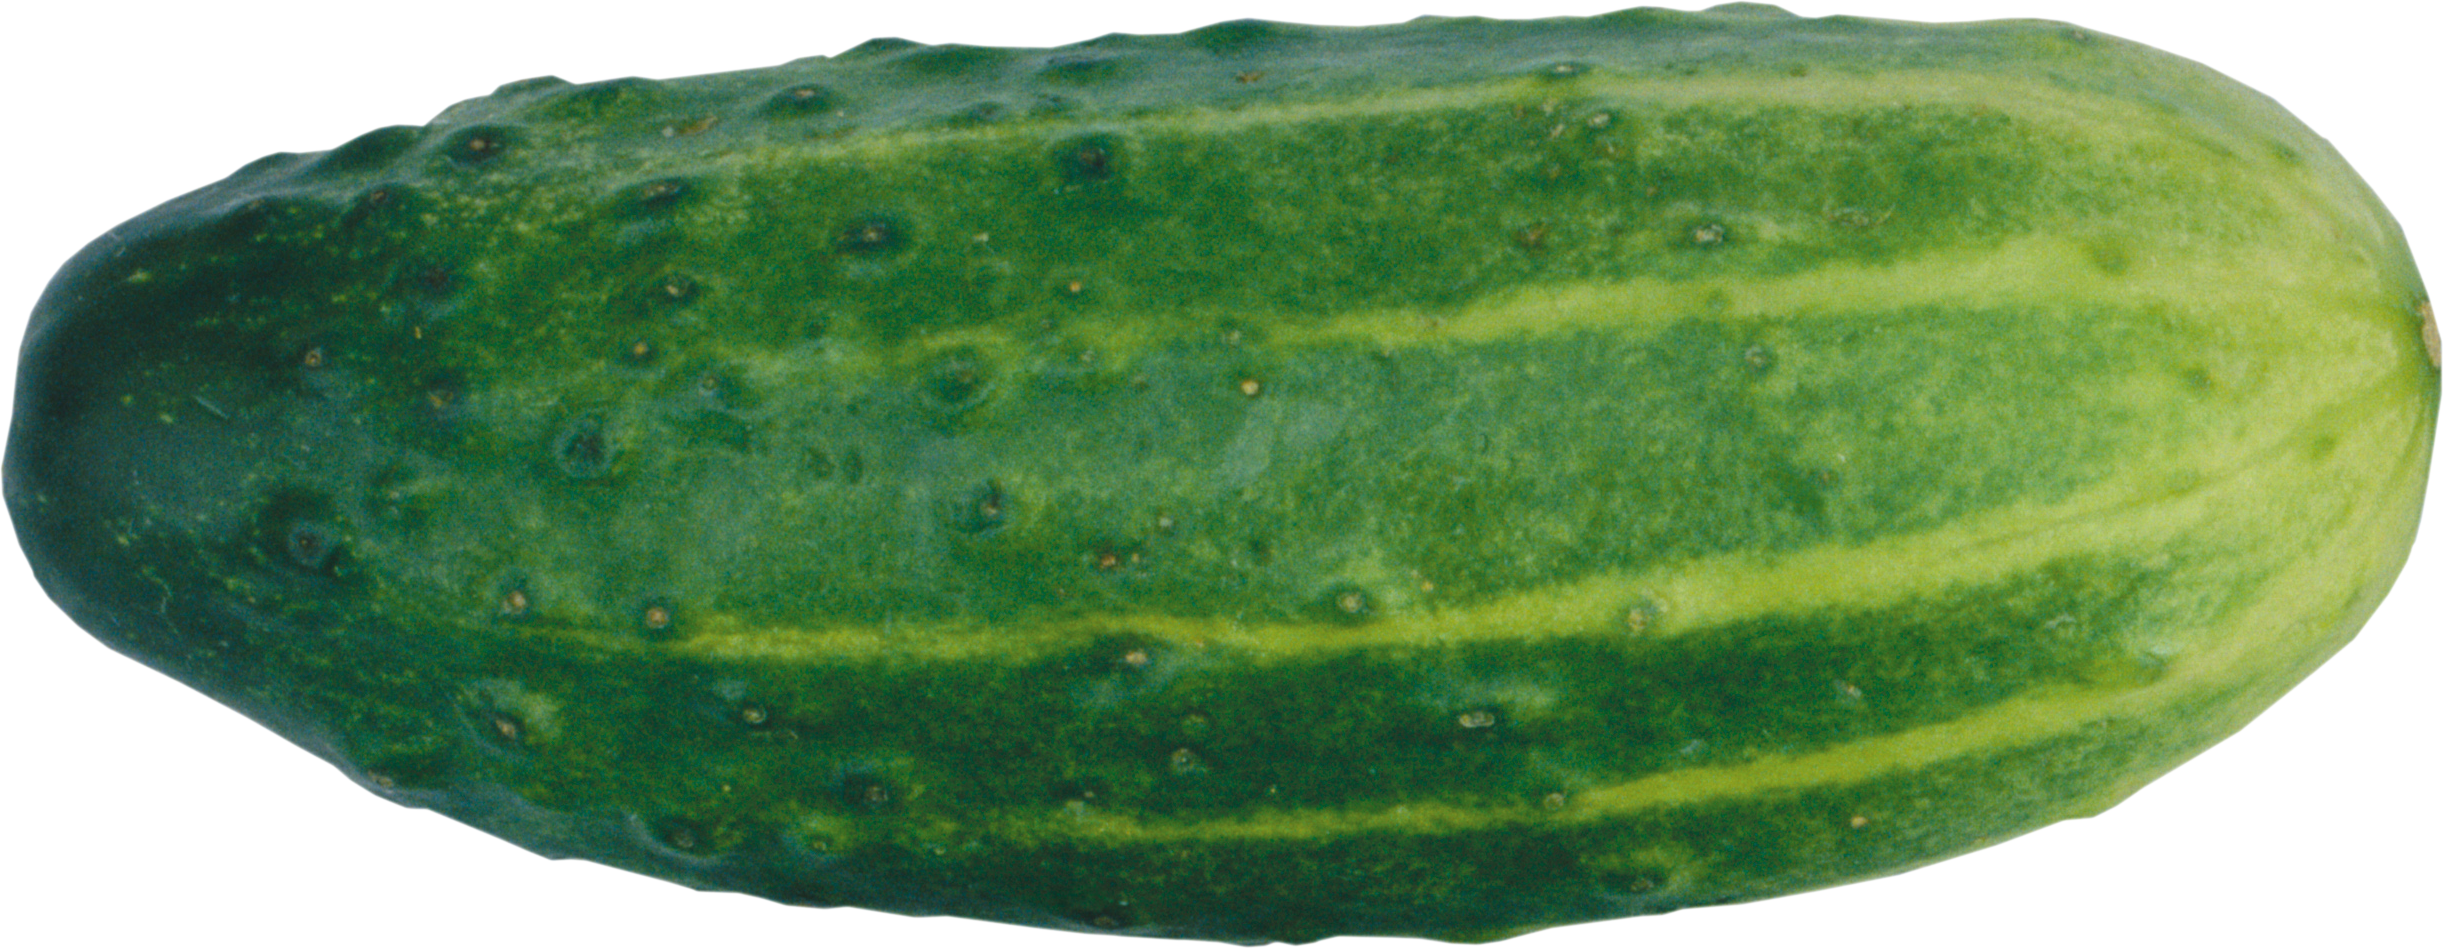 Seven isolated stock photo. Cucumber clipart outline